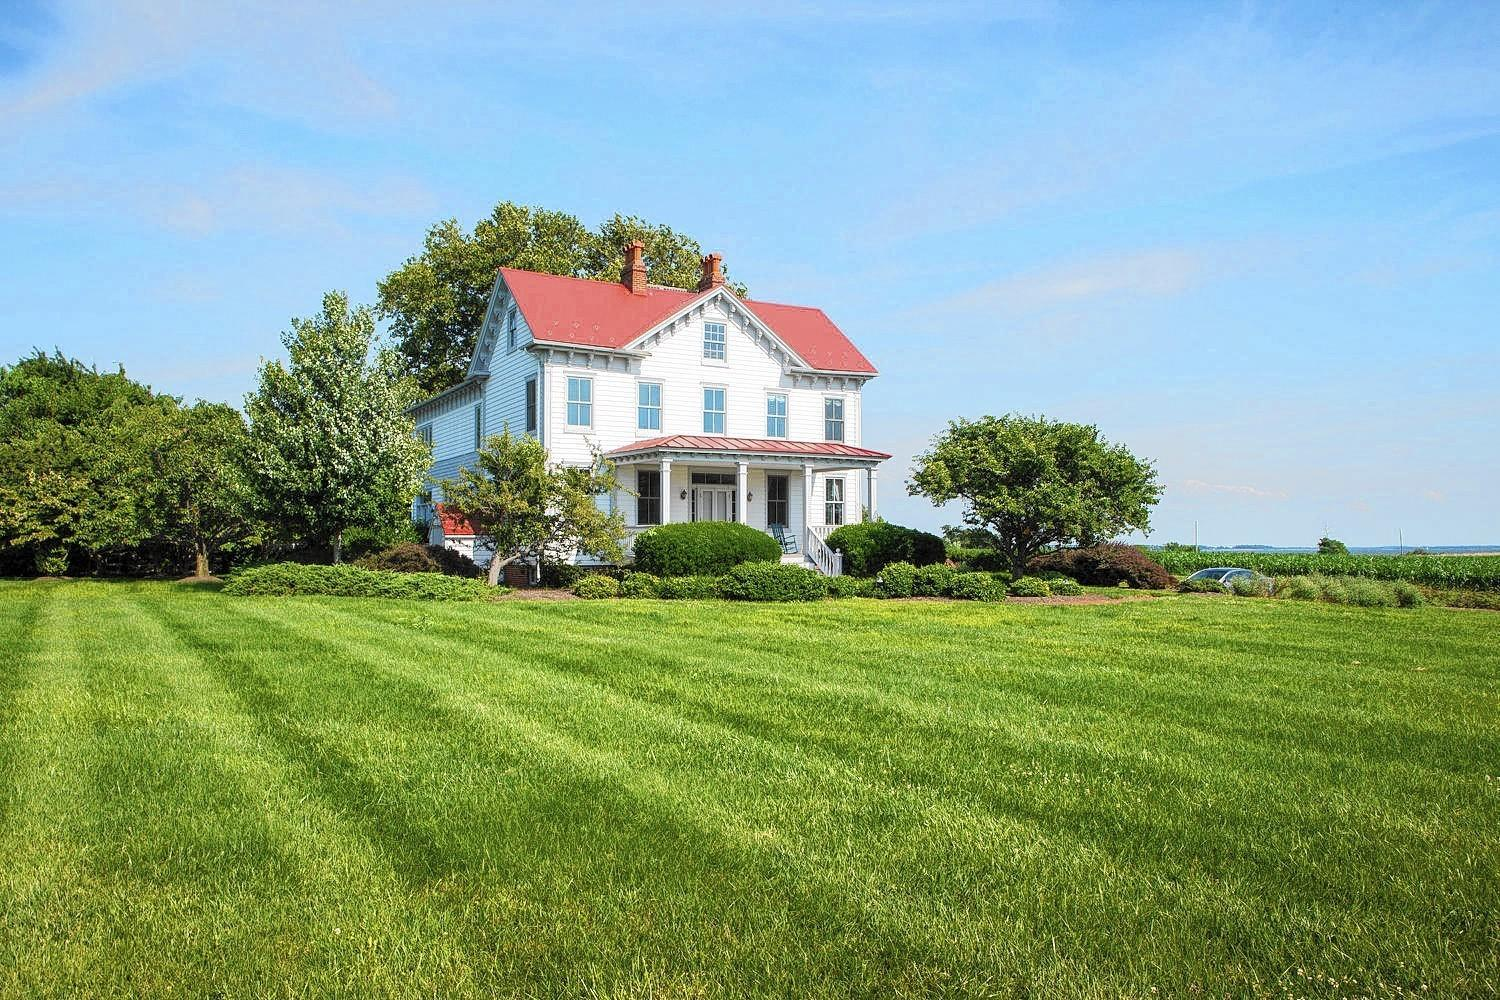 This 19th-century farmhouse in Rock Hall and the property surrounding it is for sale for $6.75 million.